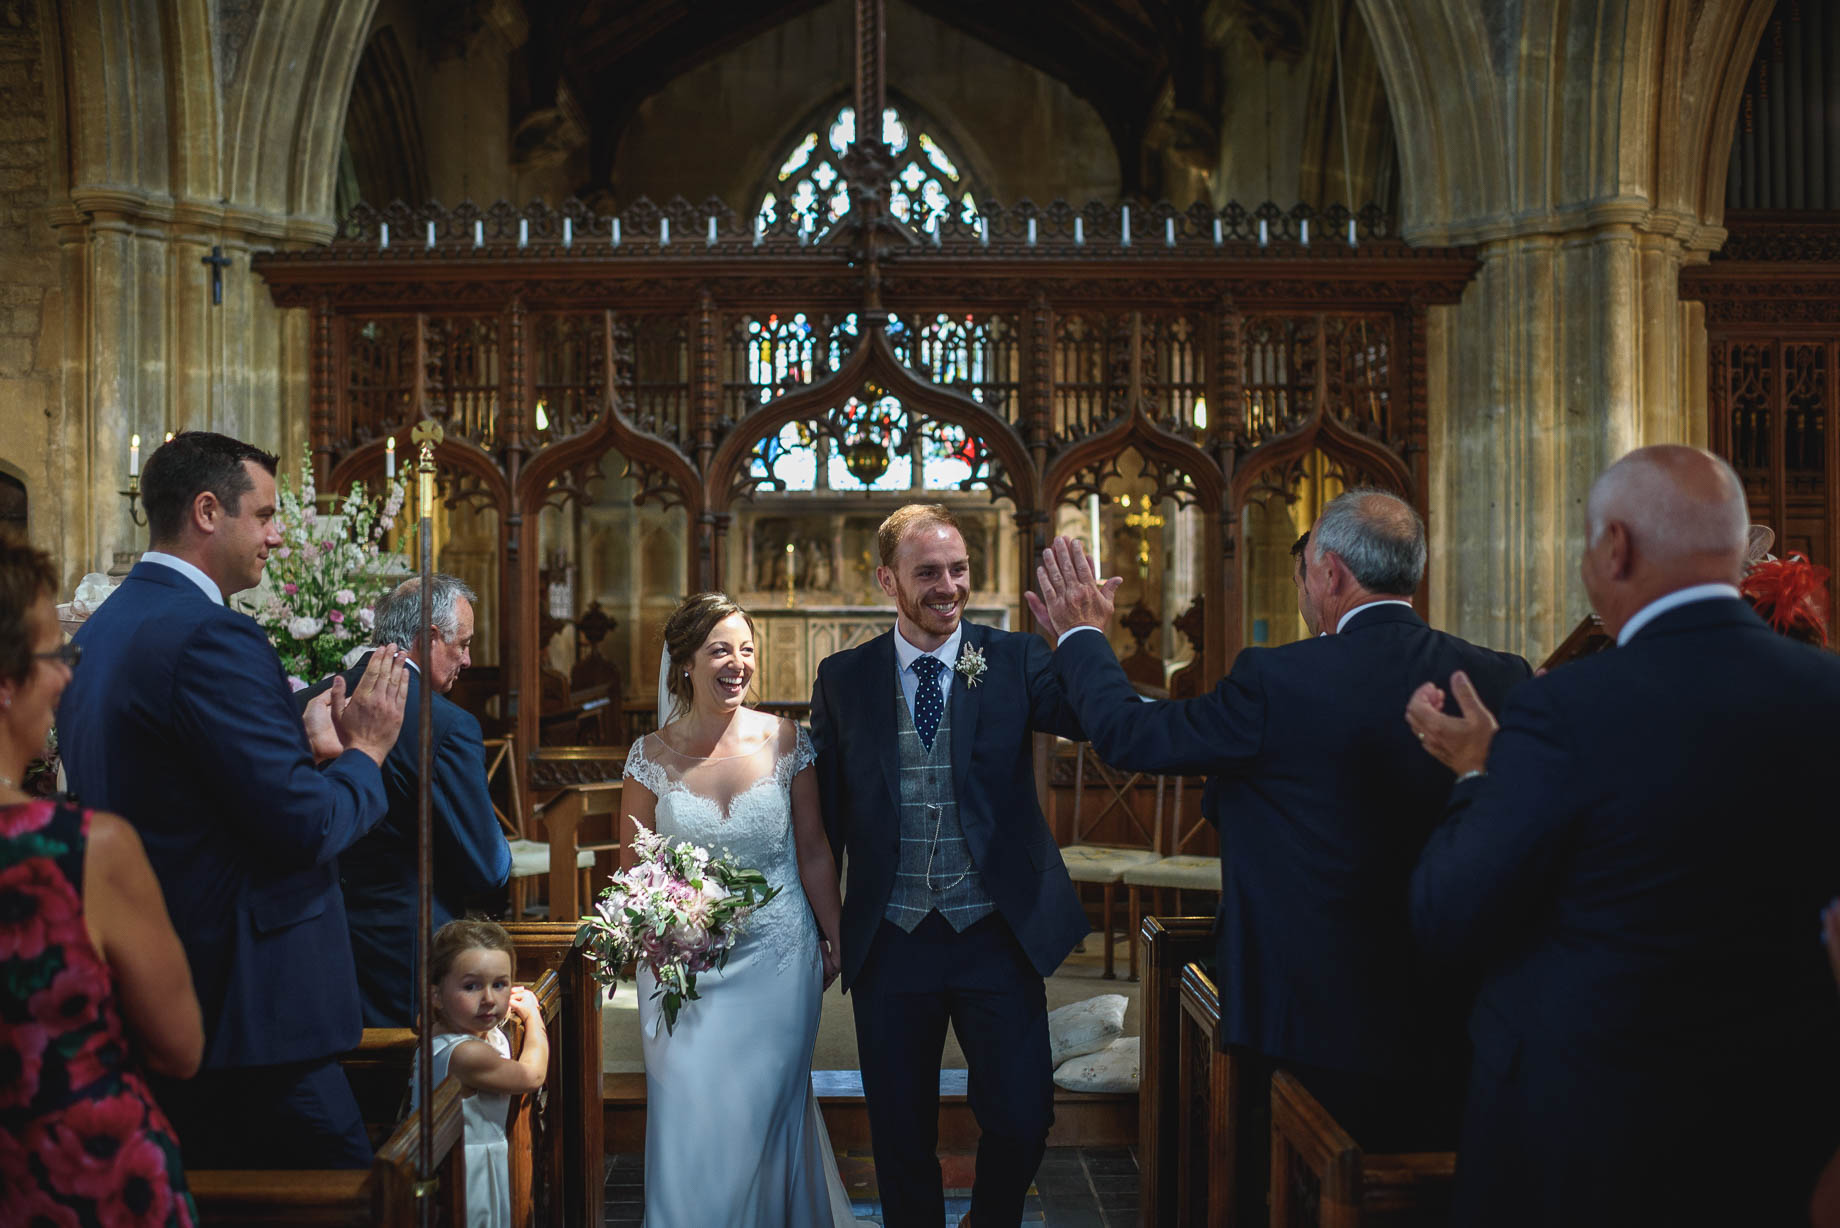 Somerset wedding photography - Abi + Rory